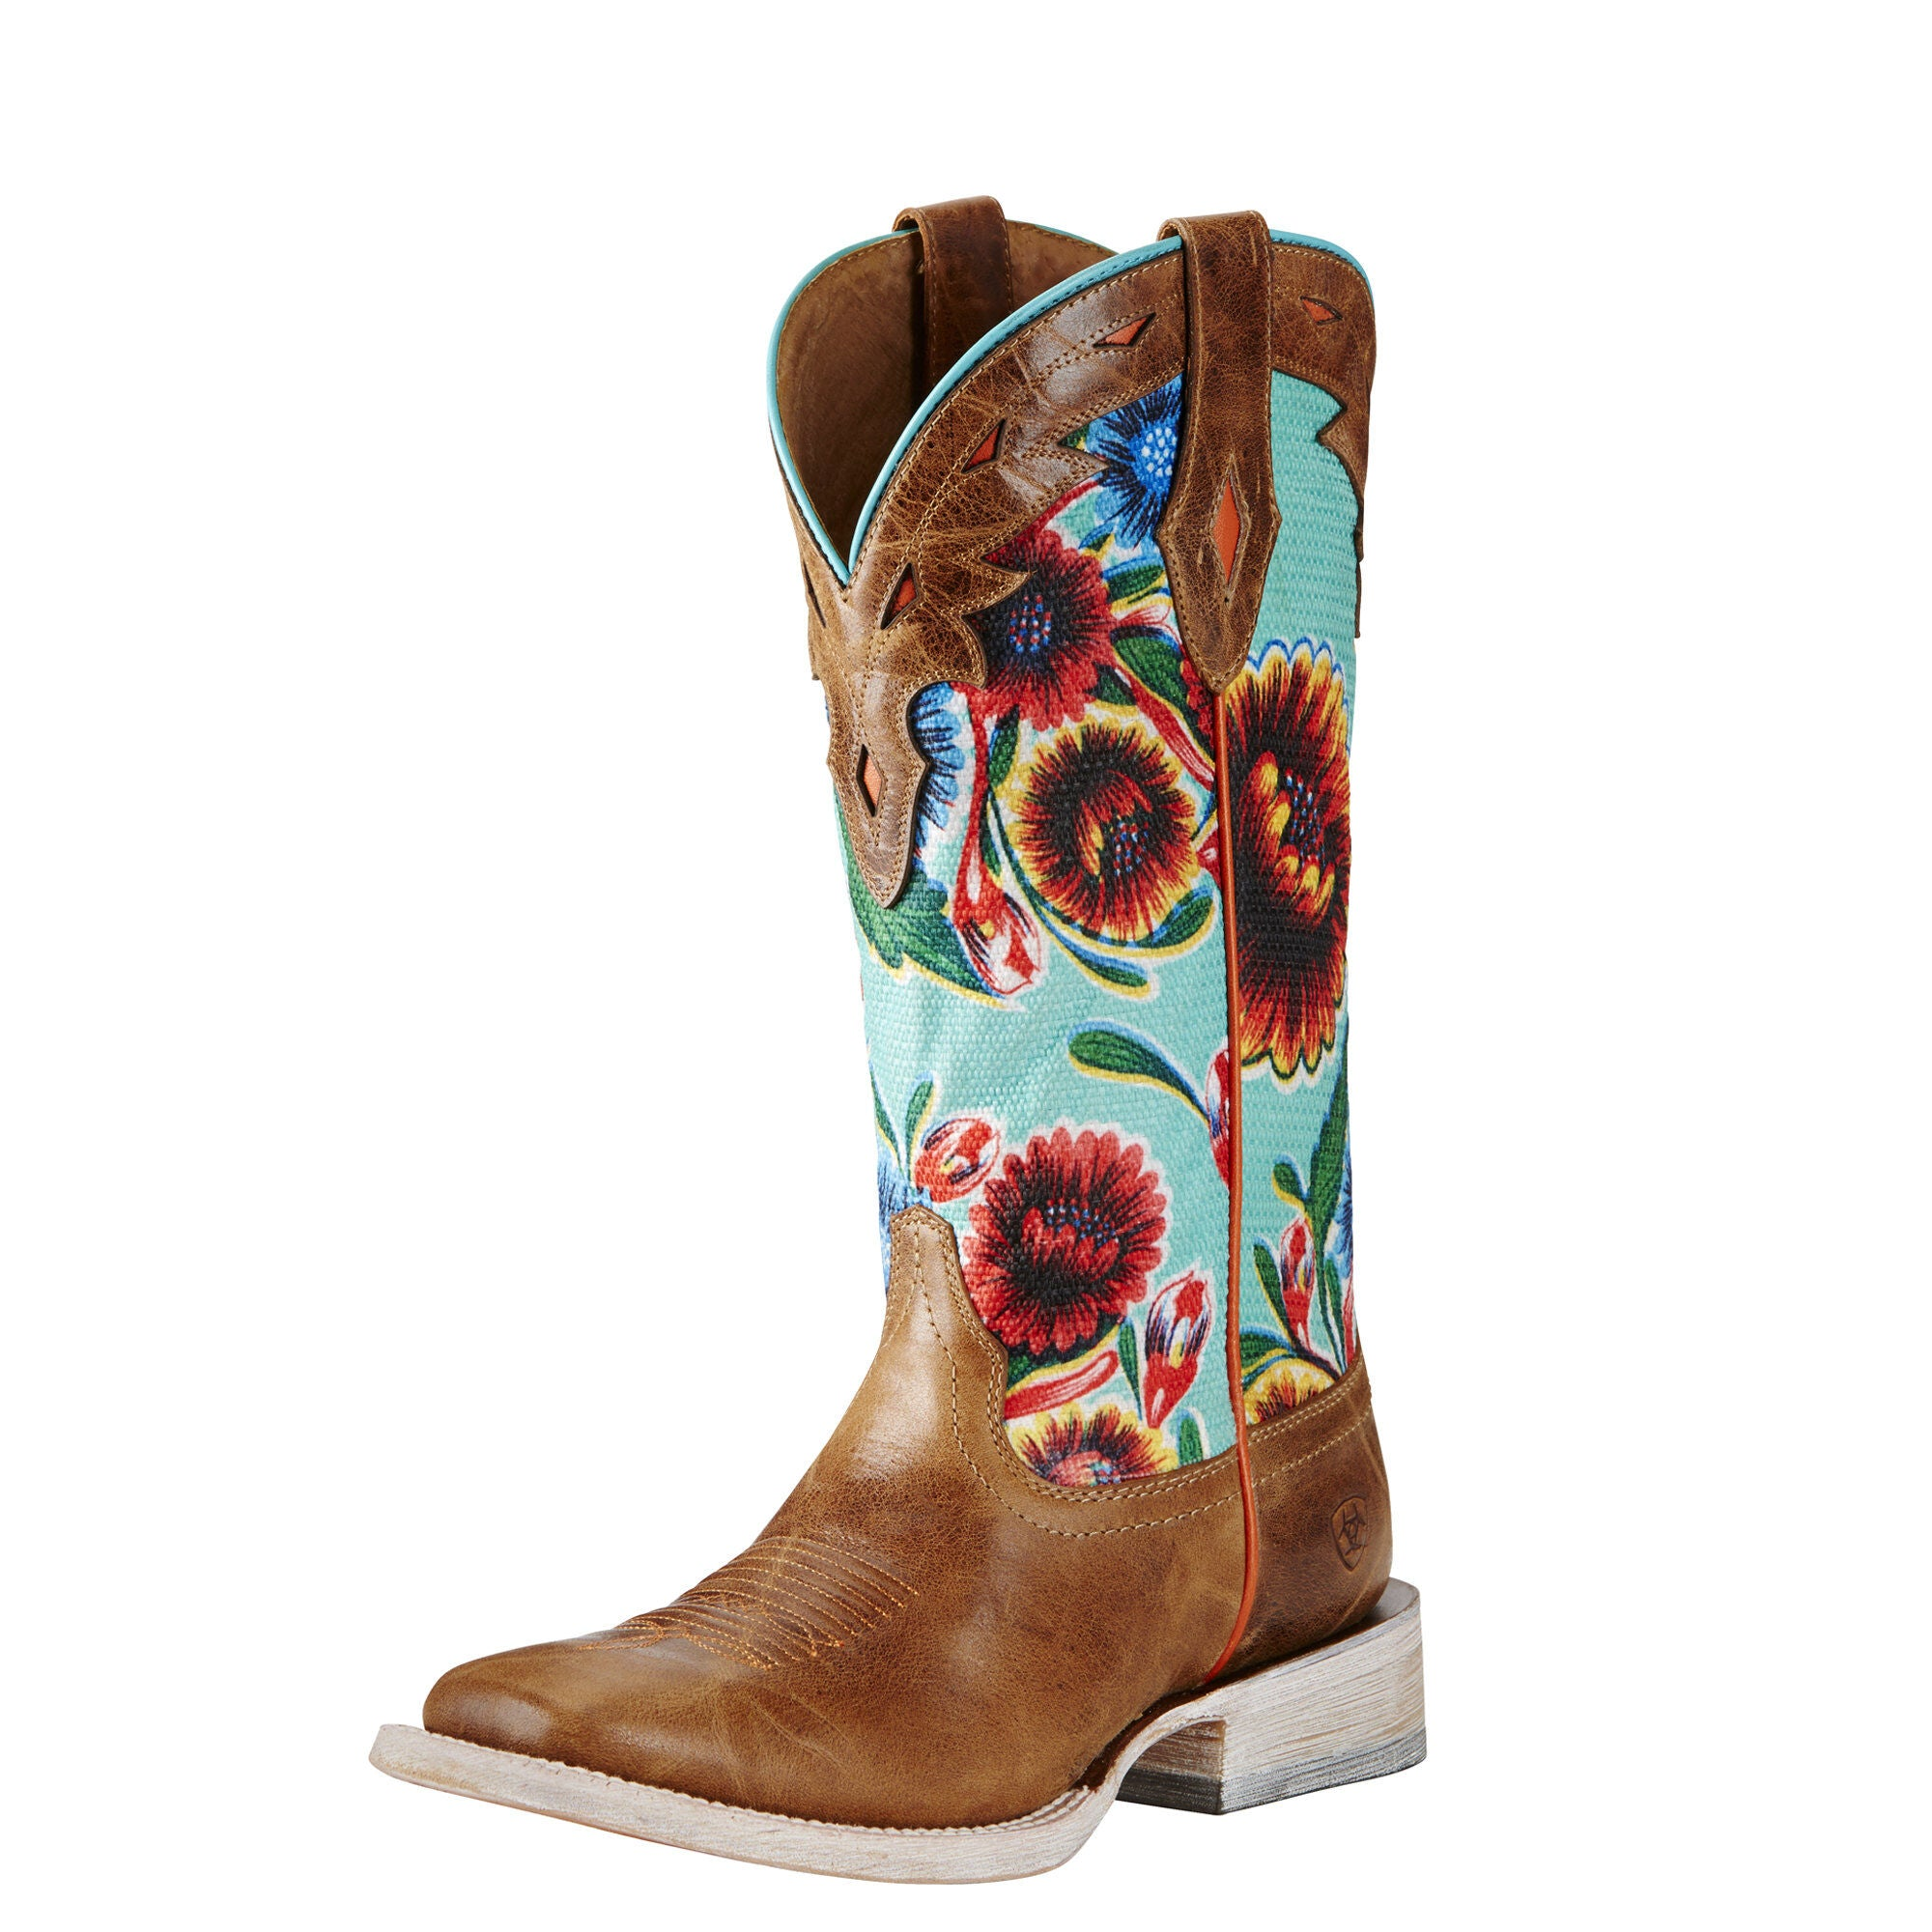 Ariat Women's Circuit Champion Boot - Bite the Dust Brown/Turquoise